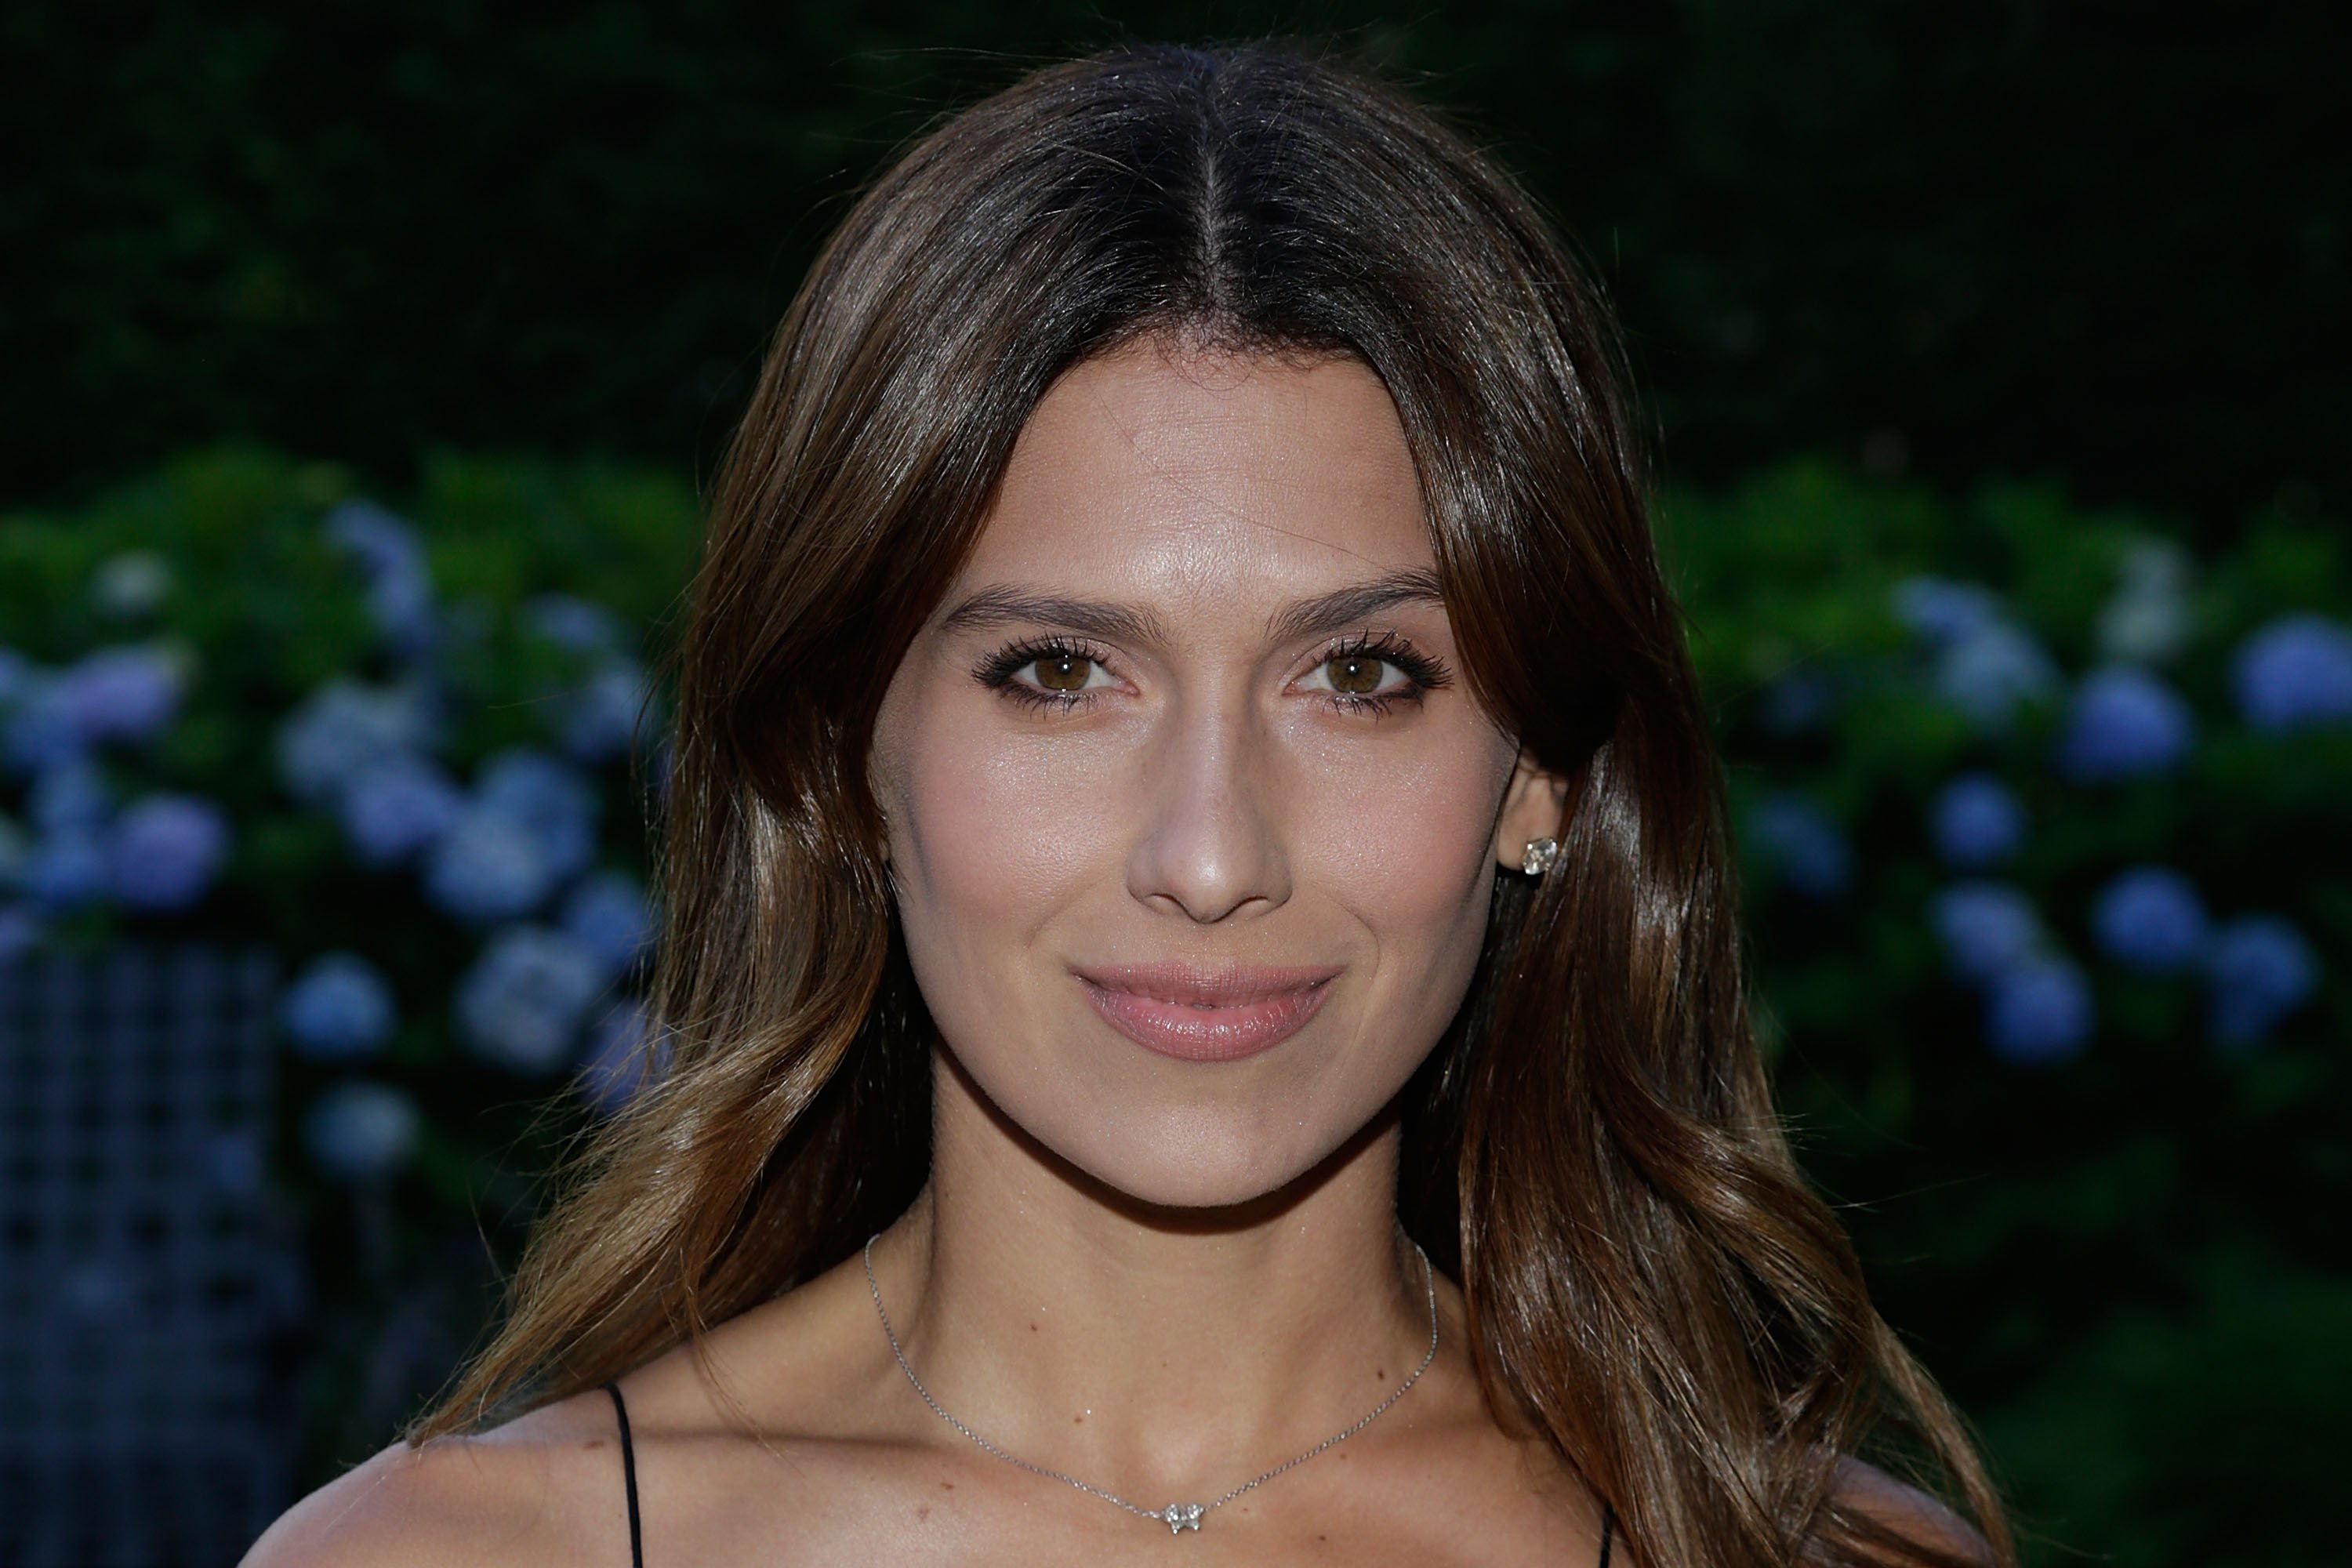 Hilaria Baldwin pictured at the Hamptons International Film Festival. | Photo: Getty Images